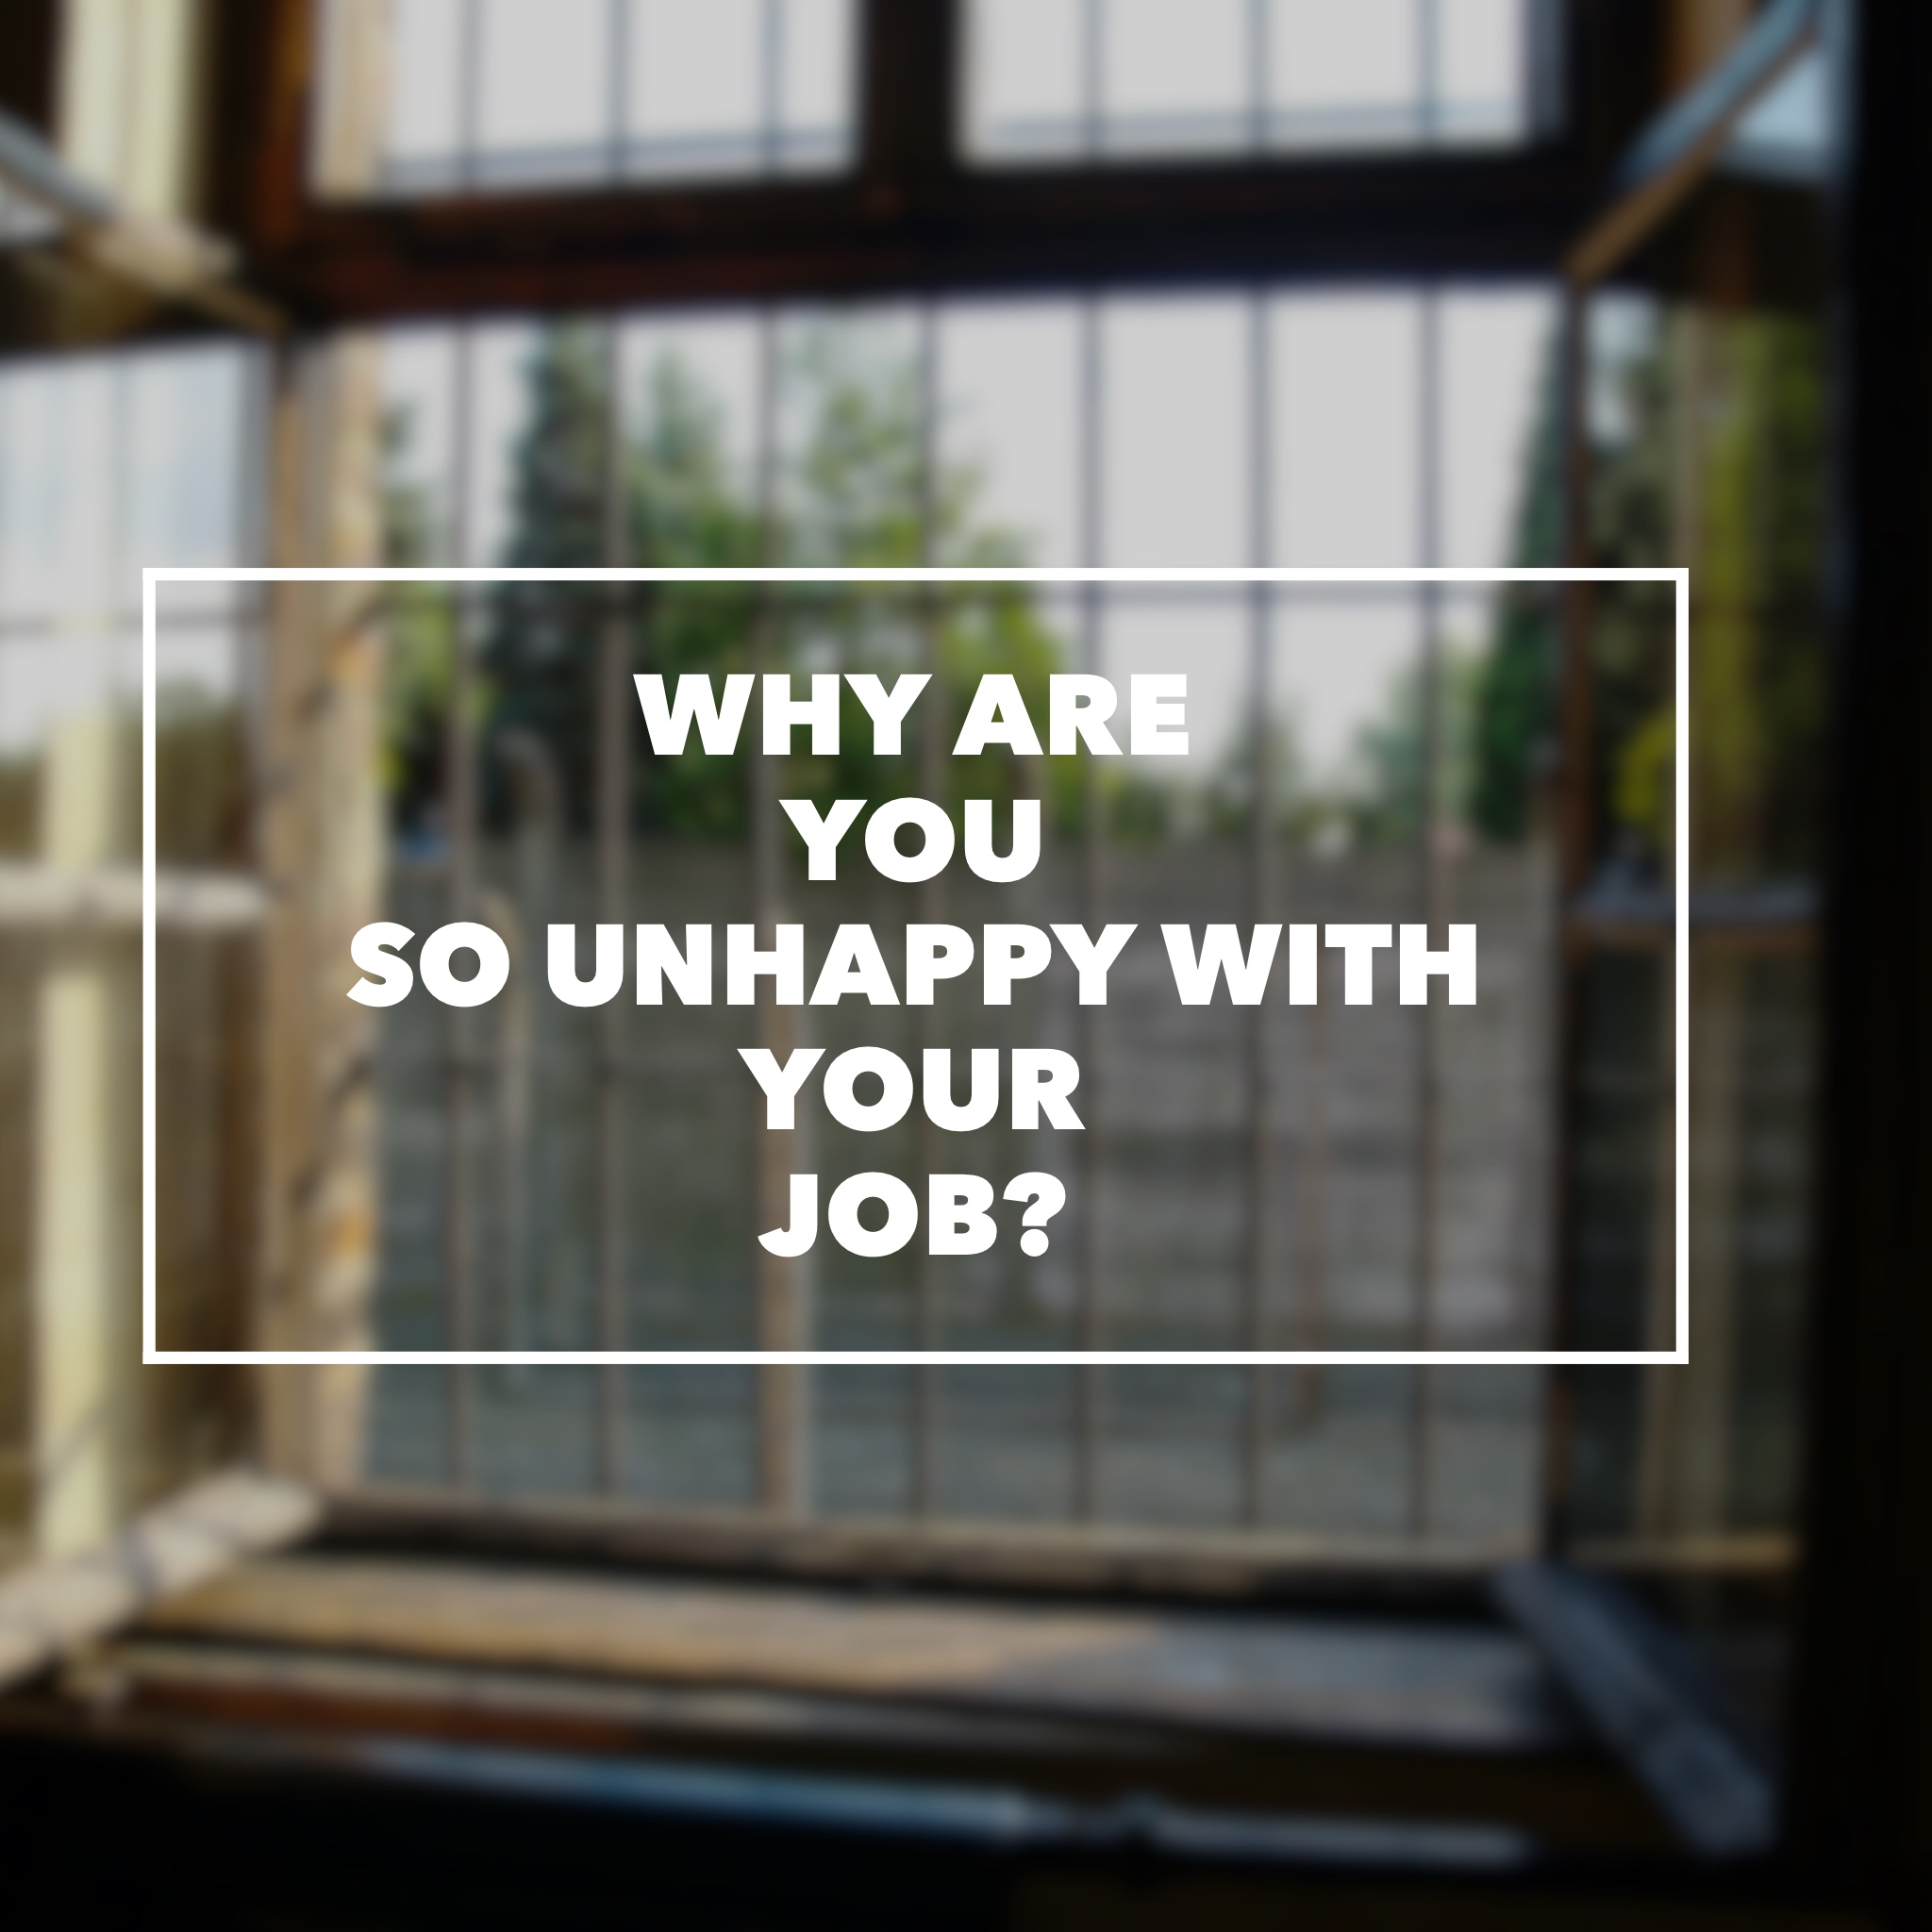 Why Are You So Unhappy With Your Job?